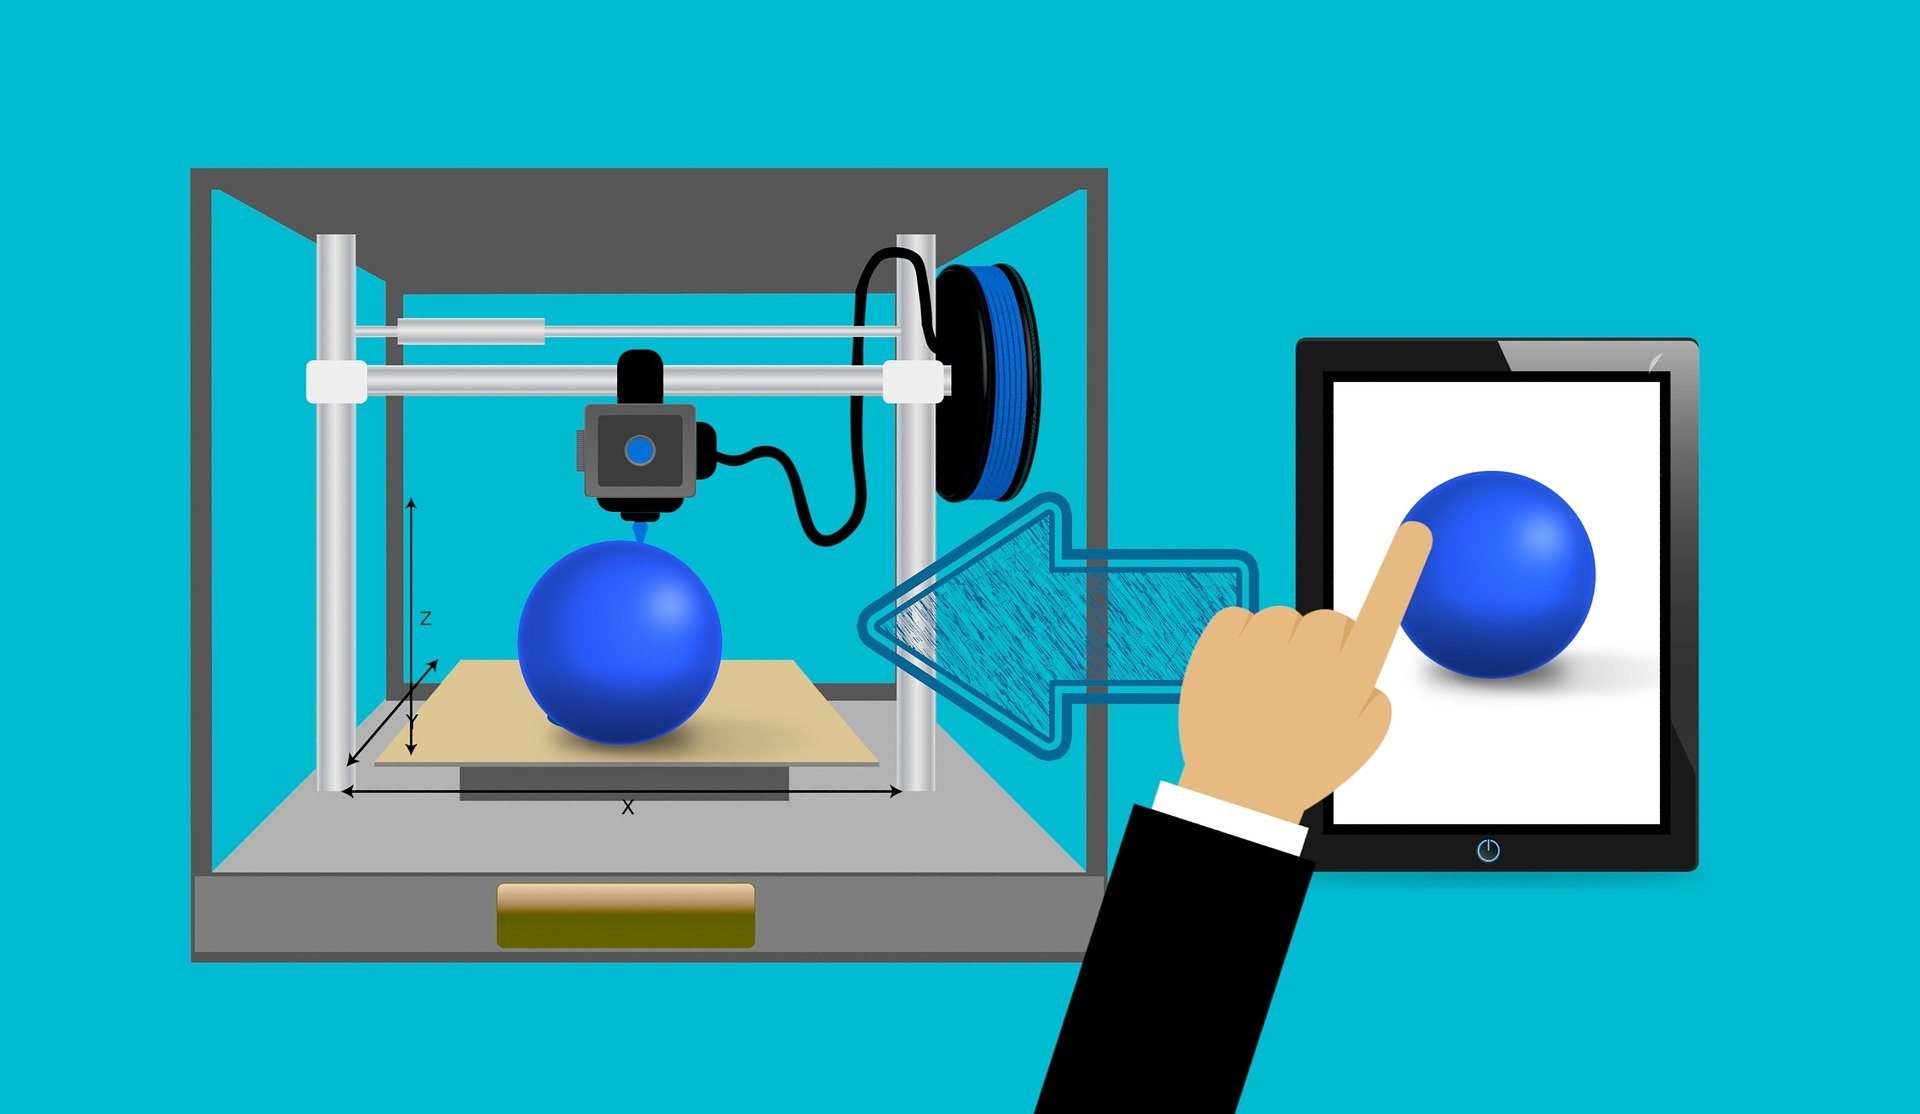 3D Printing Basics - How To Get Started With 3D Technology